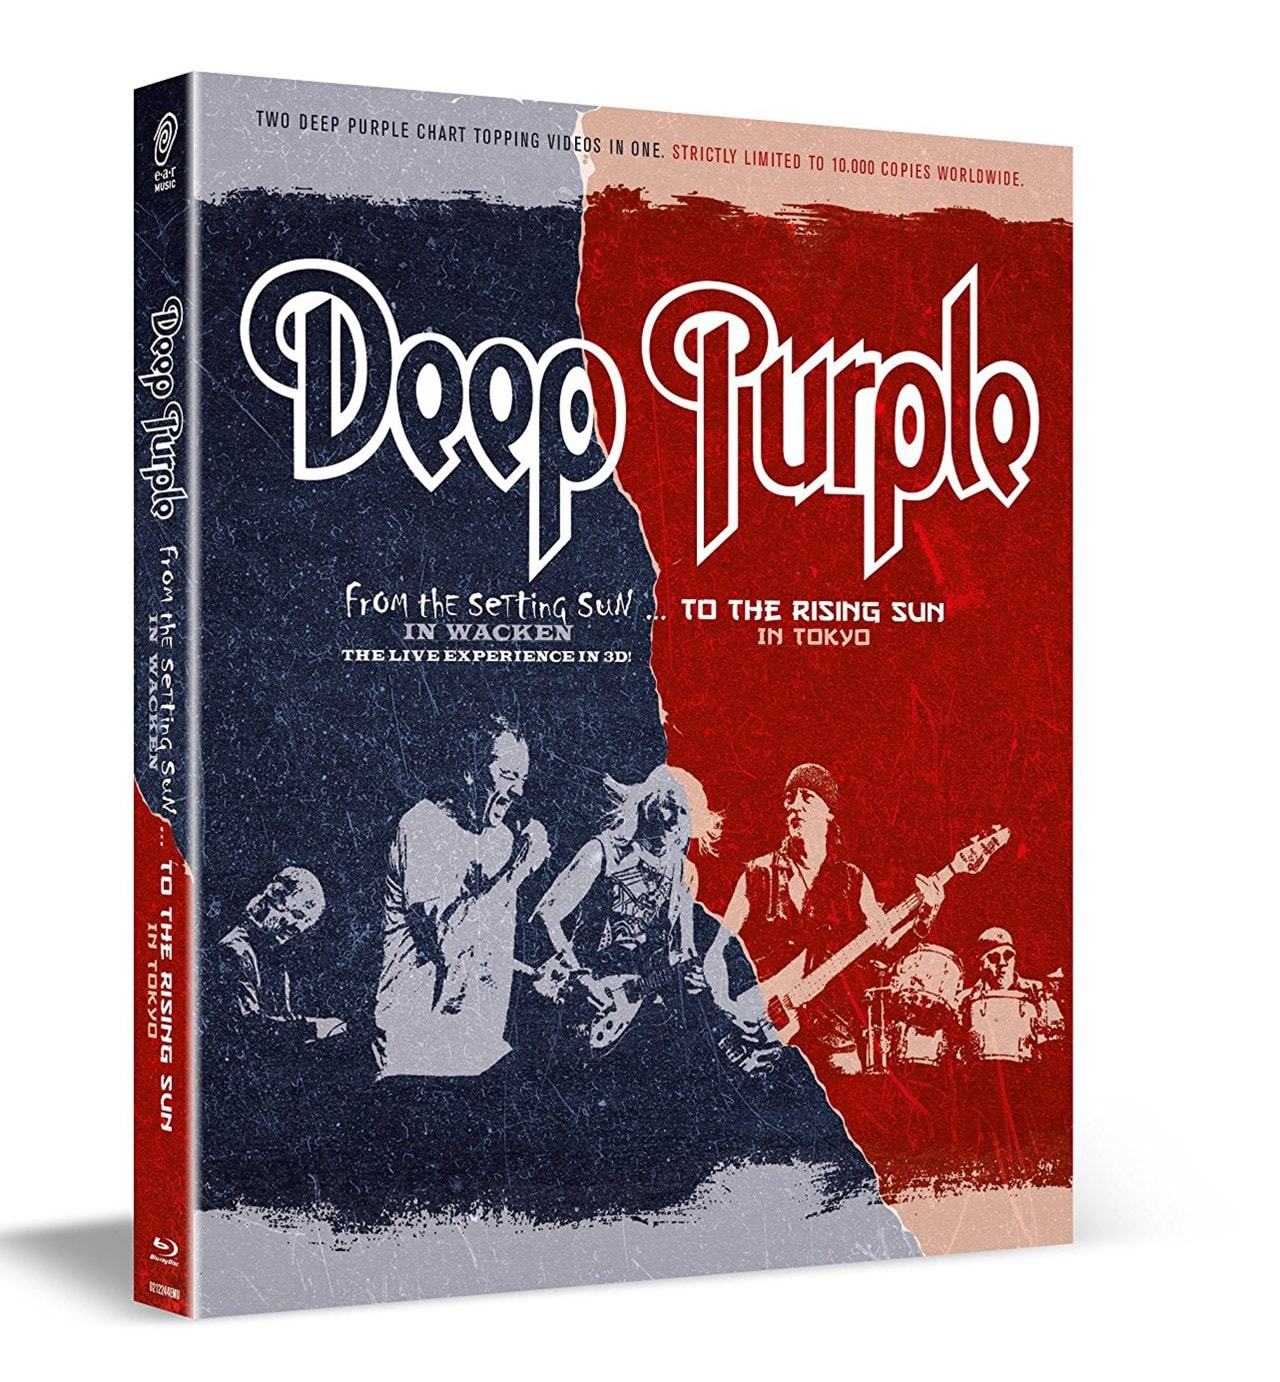 Deep Purple: From the Setting Sun in Wacken... To the Rising... - 4